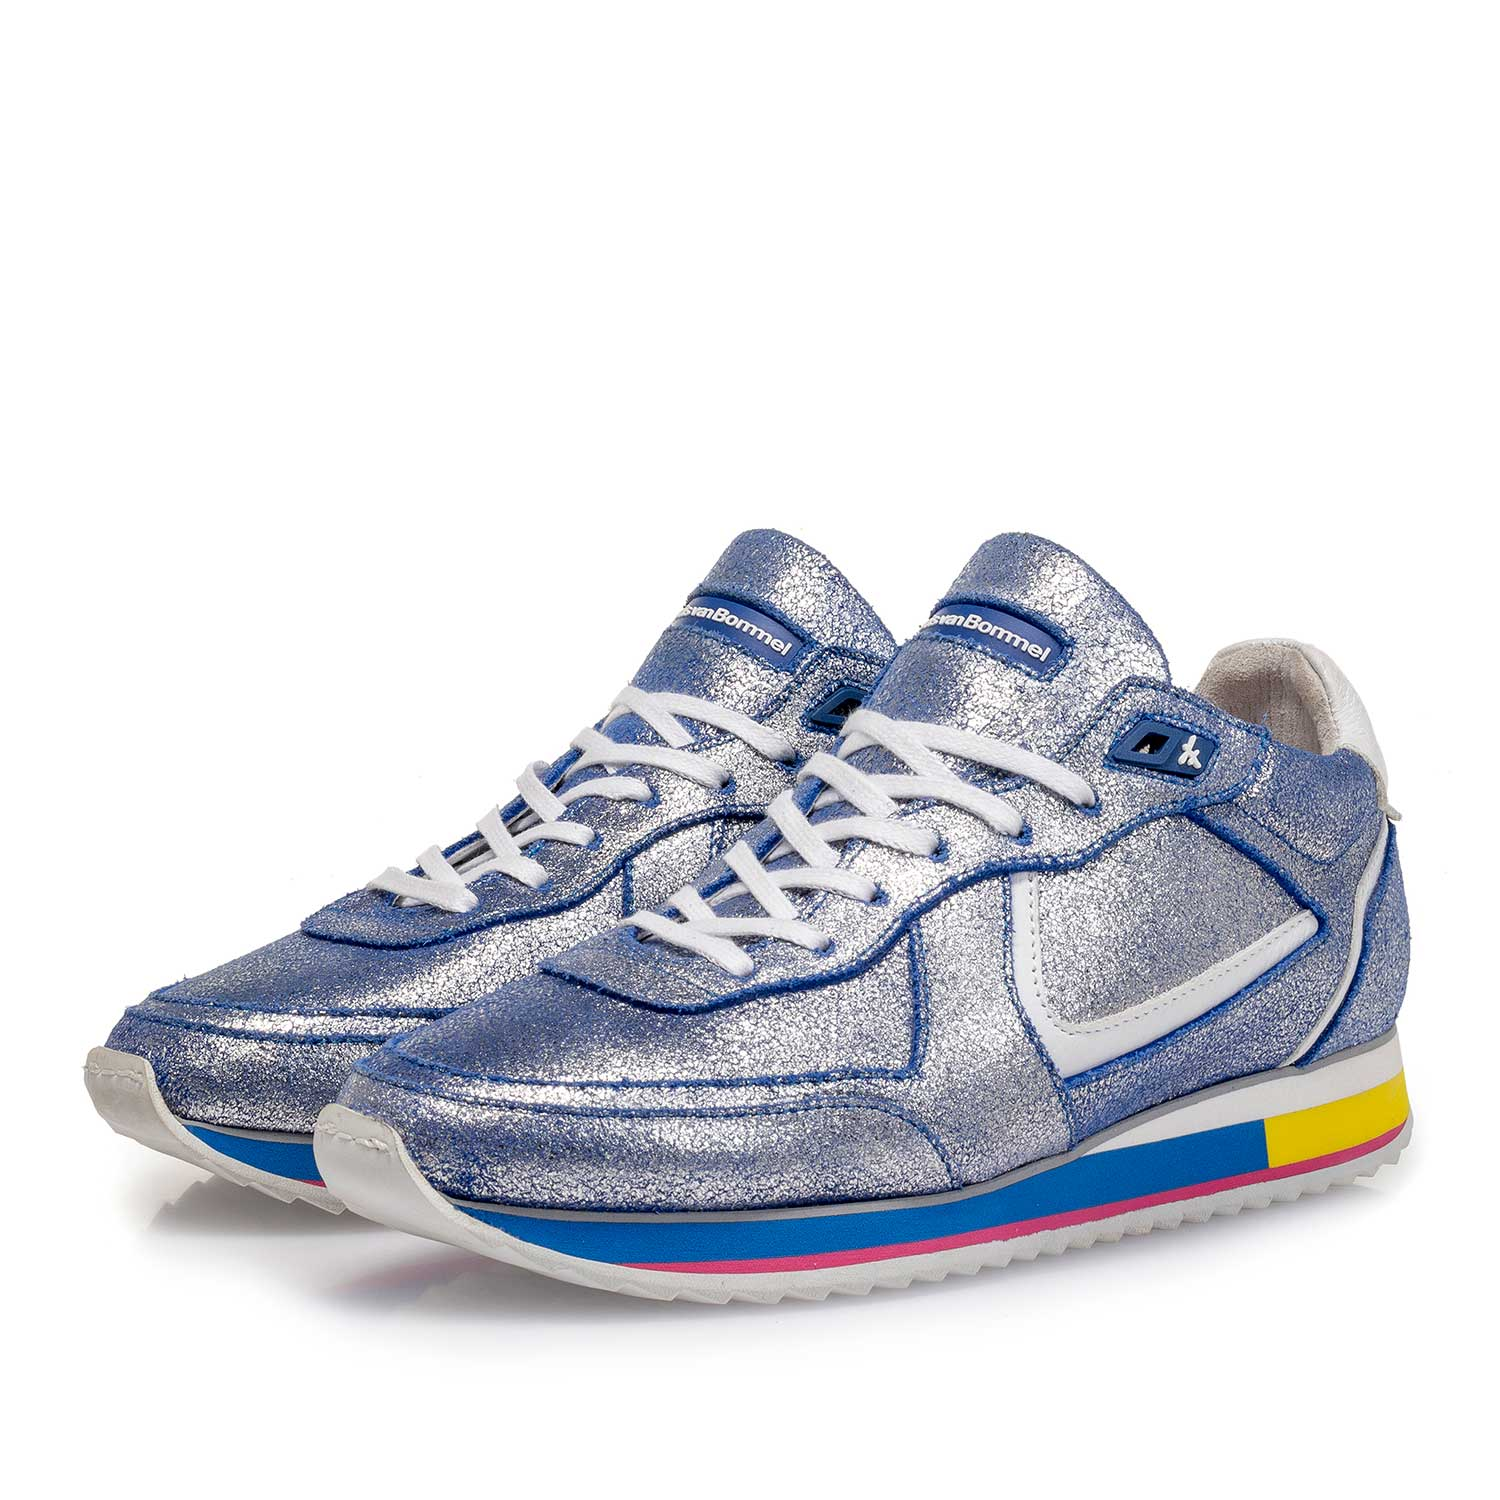 85260/14 - Silver metallic leather sneaker with blue changing effect